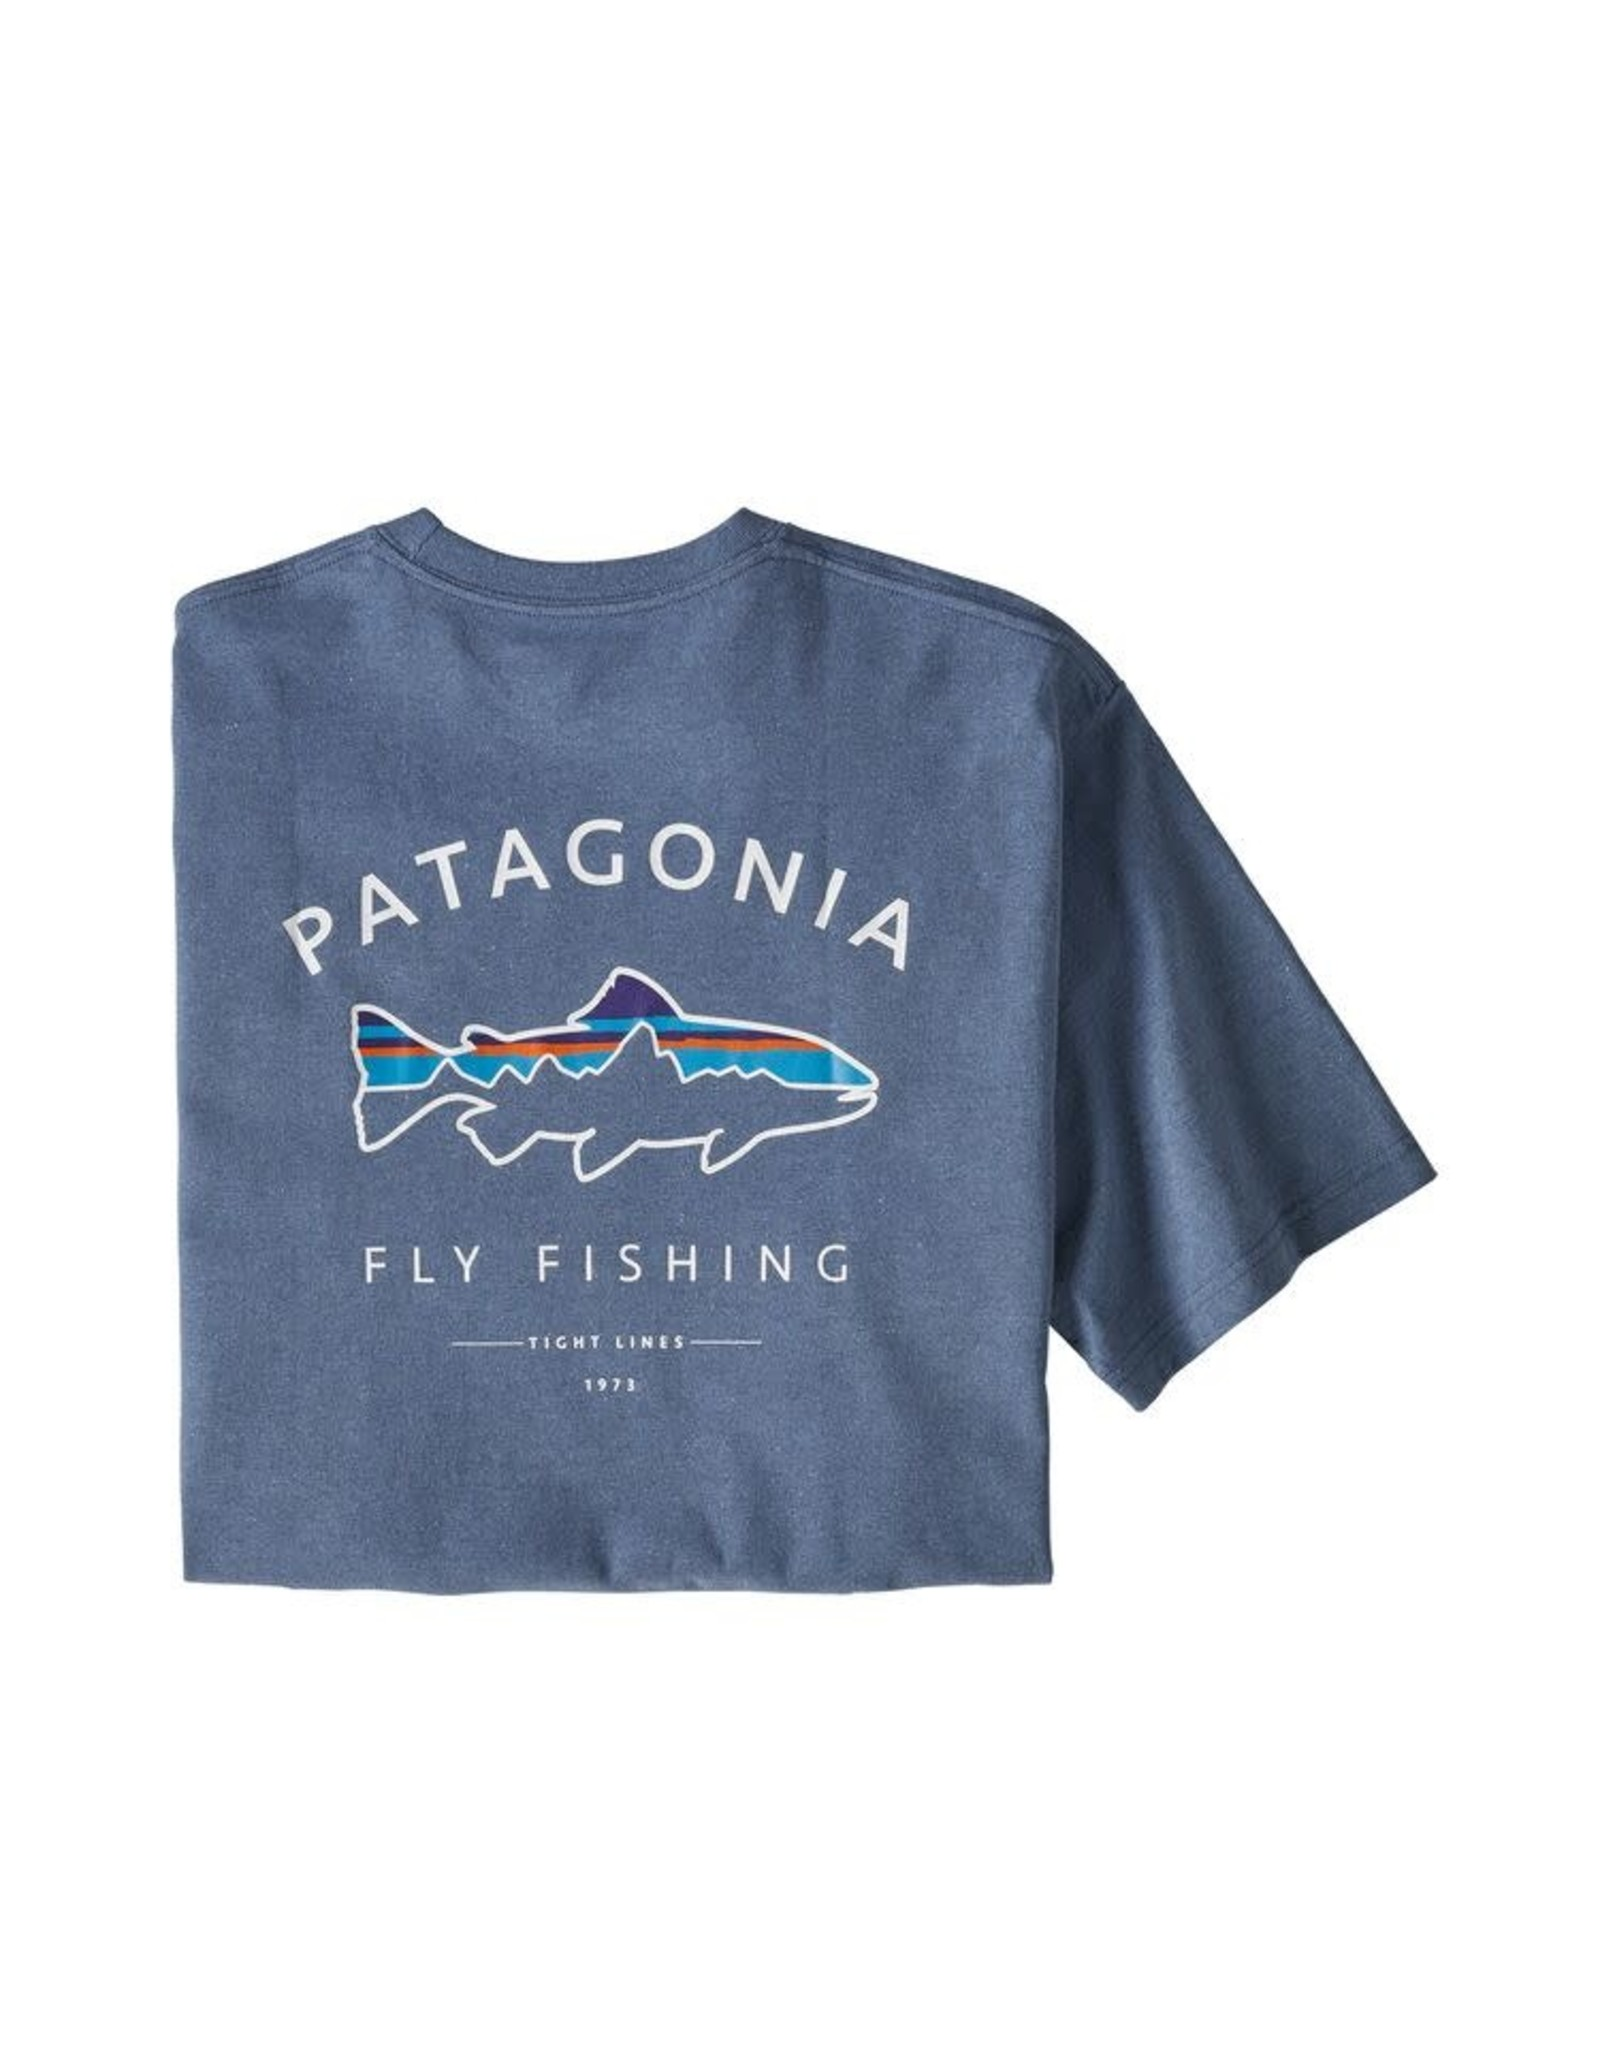 Patagonia Patagonia Men's Framed Fitz Roy Trout Responsibili-Tee